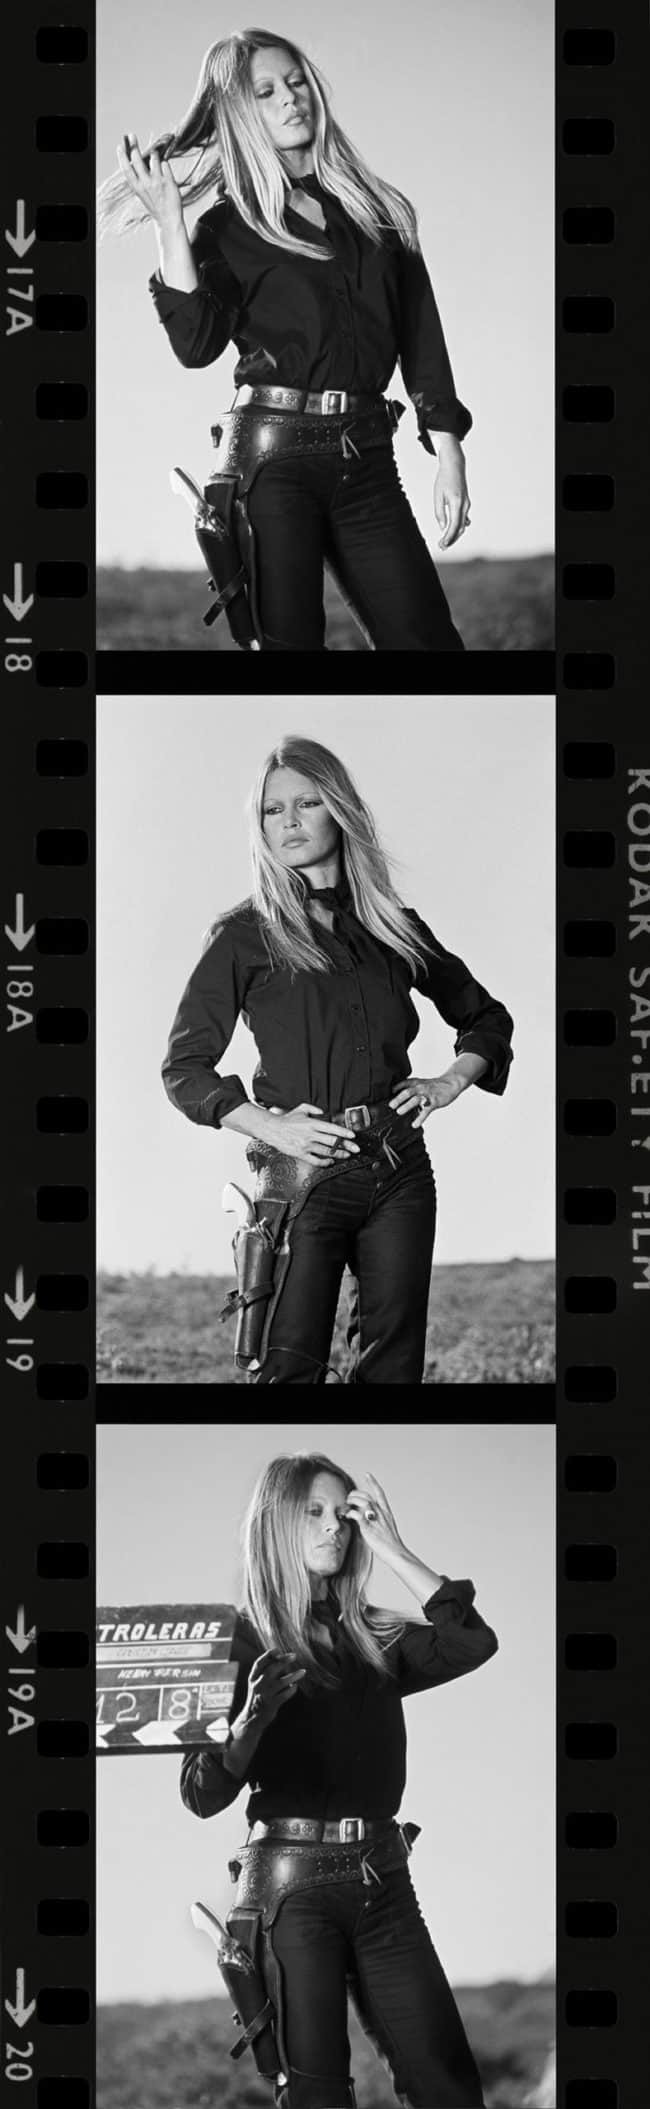 bridget bardot by terry O'Neill available at zebra one gallery